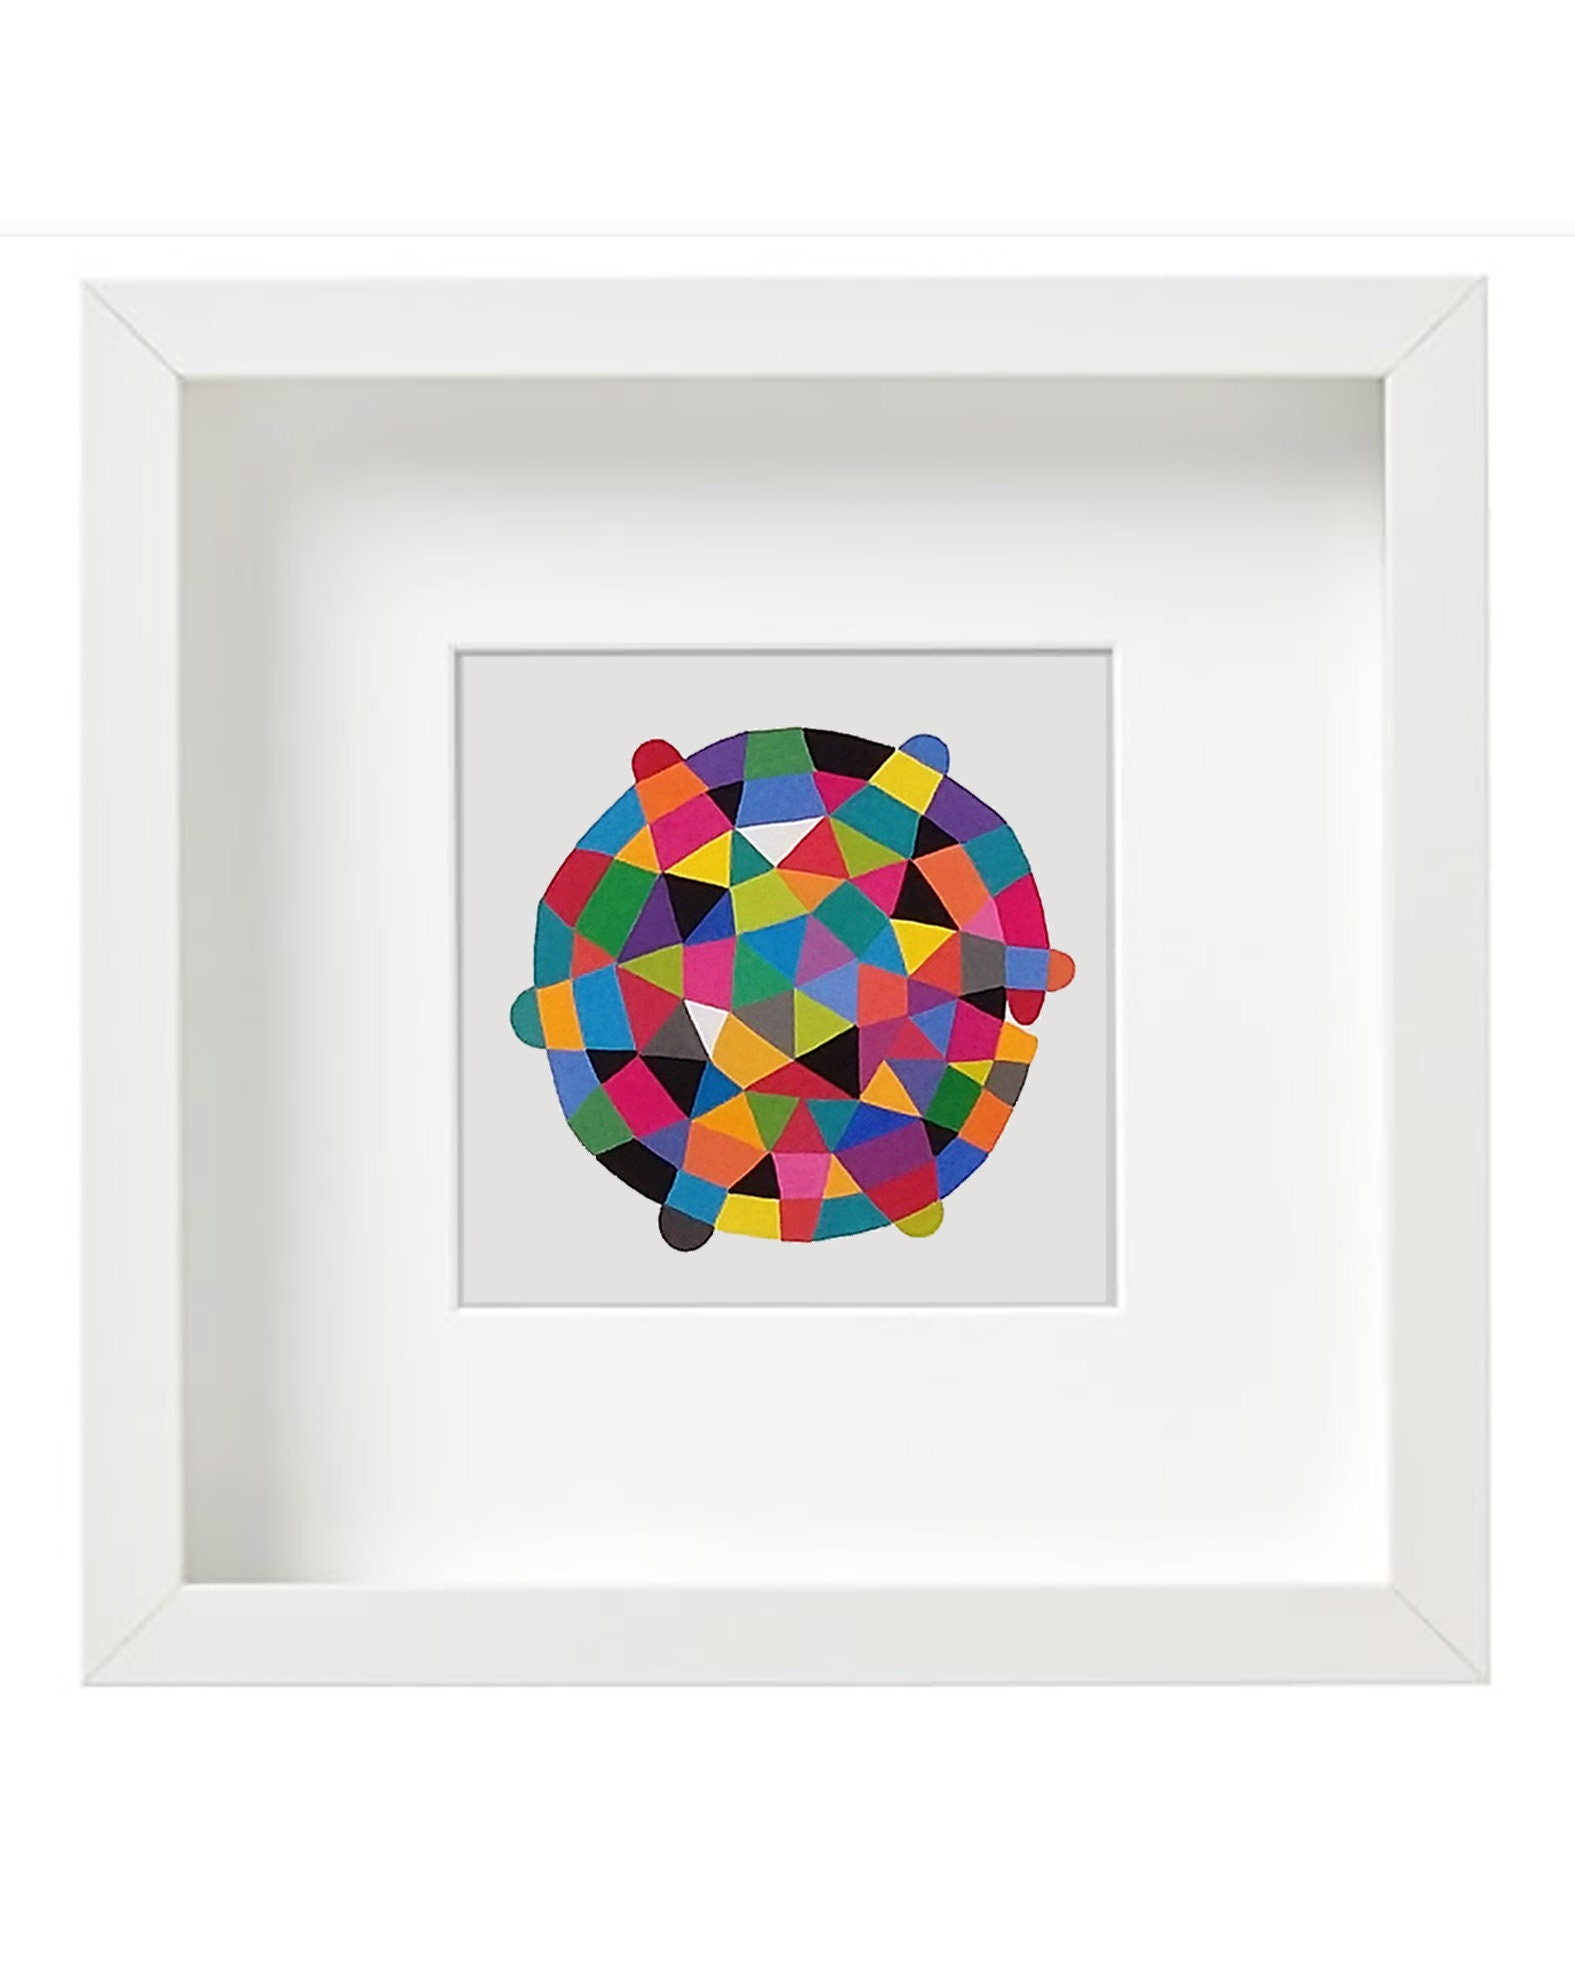 Round_shape_001, original abstract artwork - product images  of